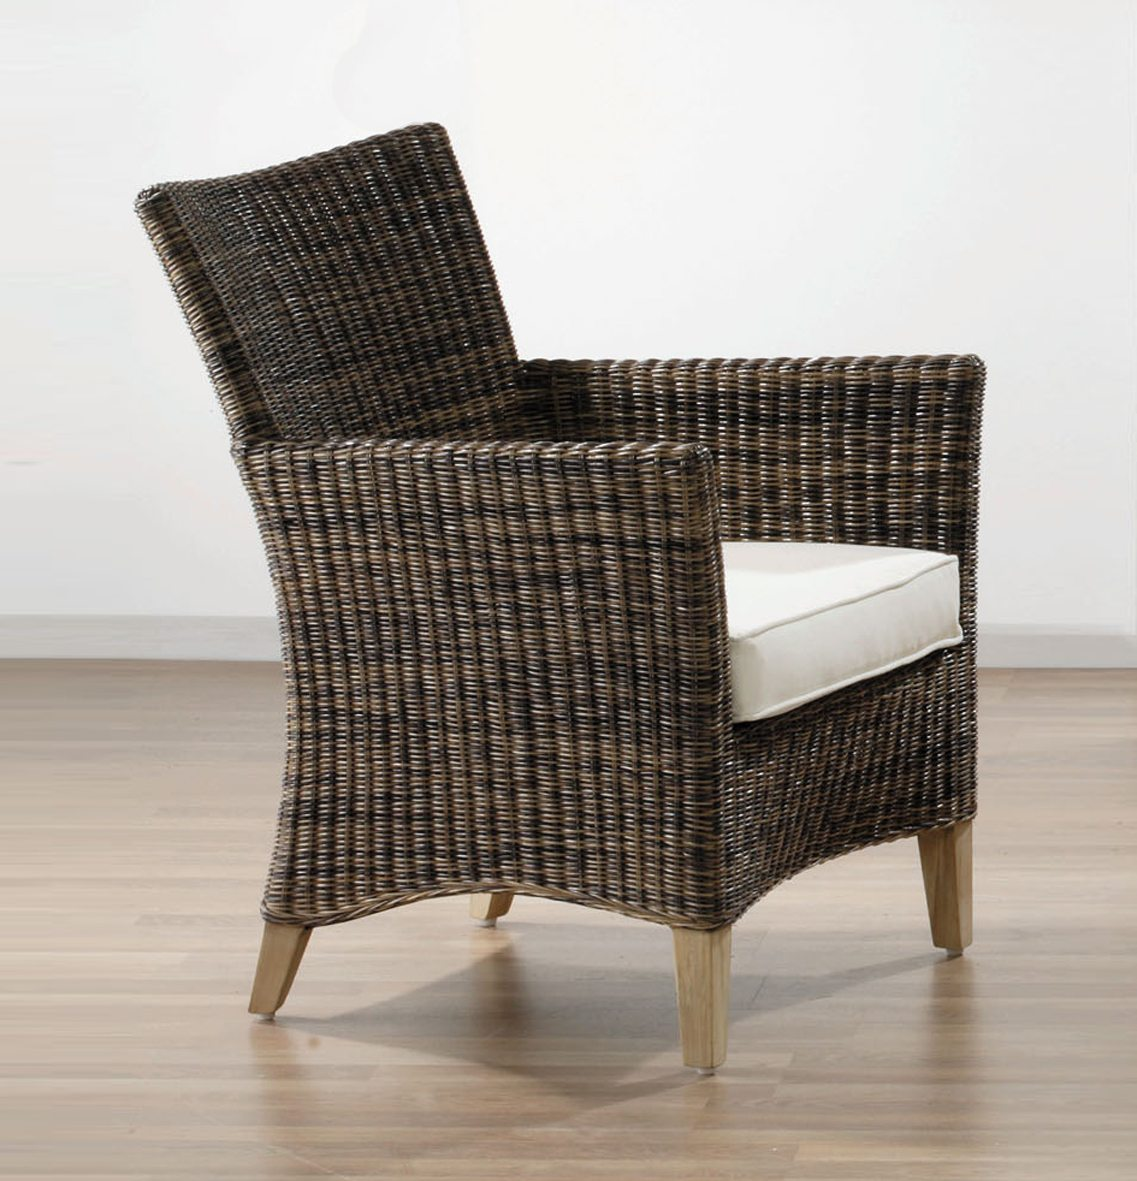 wicker chair the lost ogle